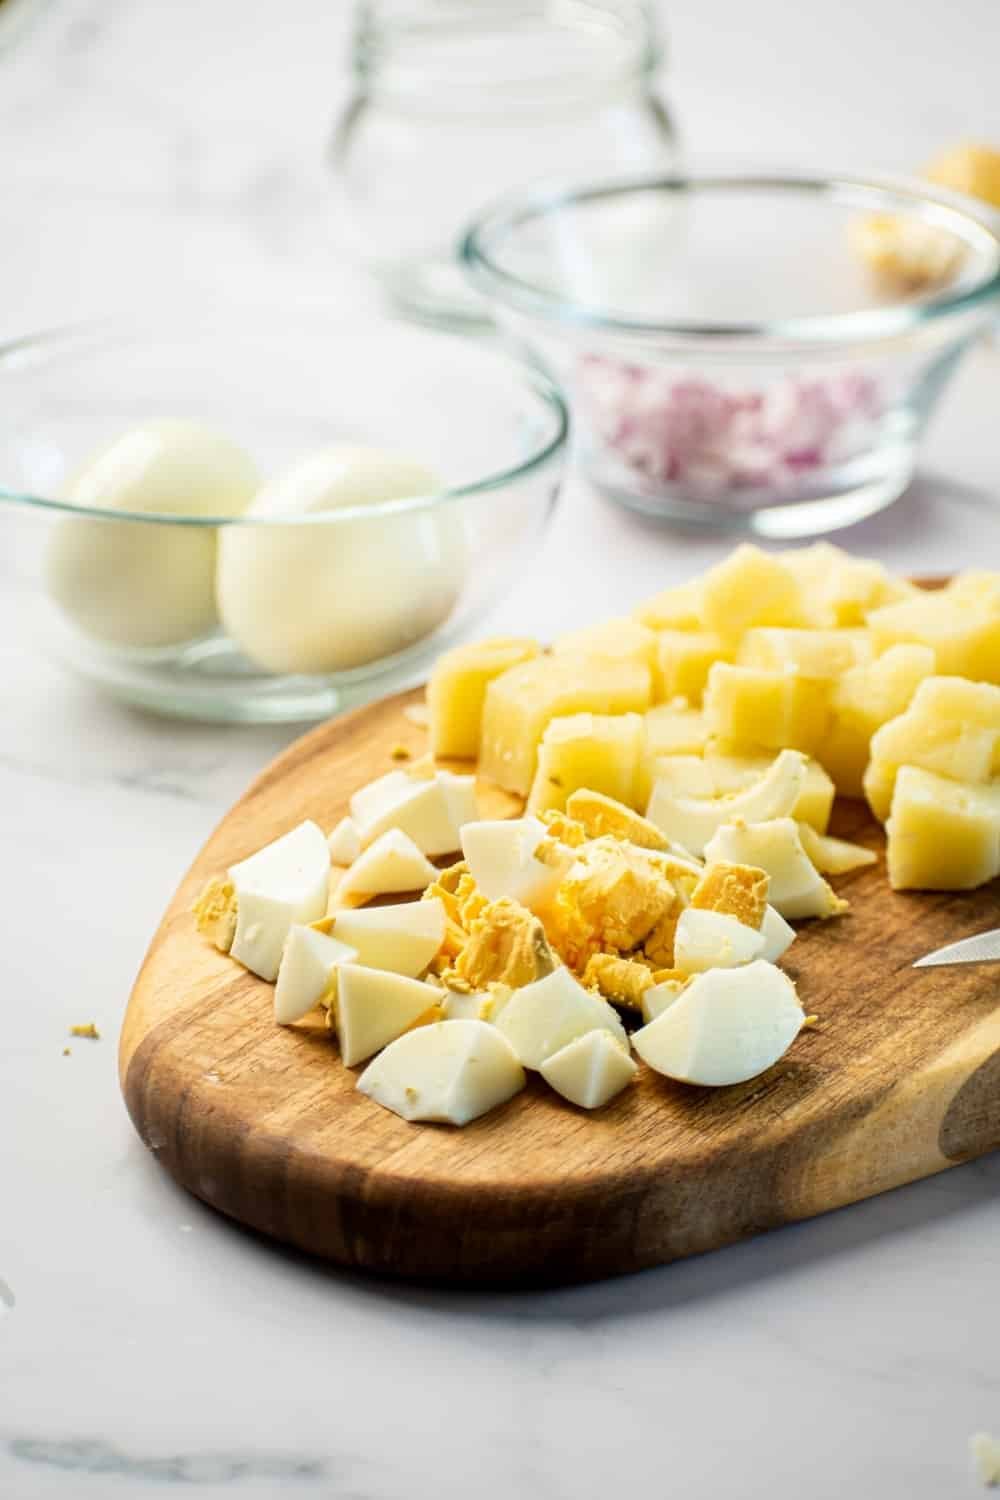 A woden cutting board sliced hard-boiled cubes of potatoes behind it. To the left of the cutting board is a glass bowl with two hard boiled eggs and next to that a glass bowl with chopped red onion.